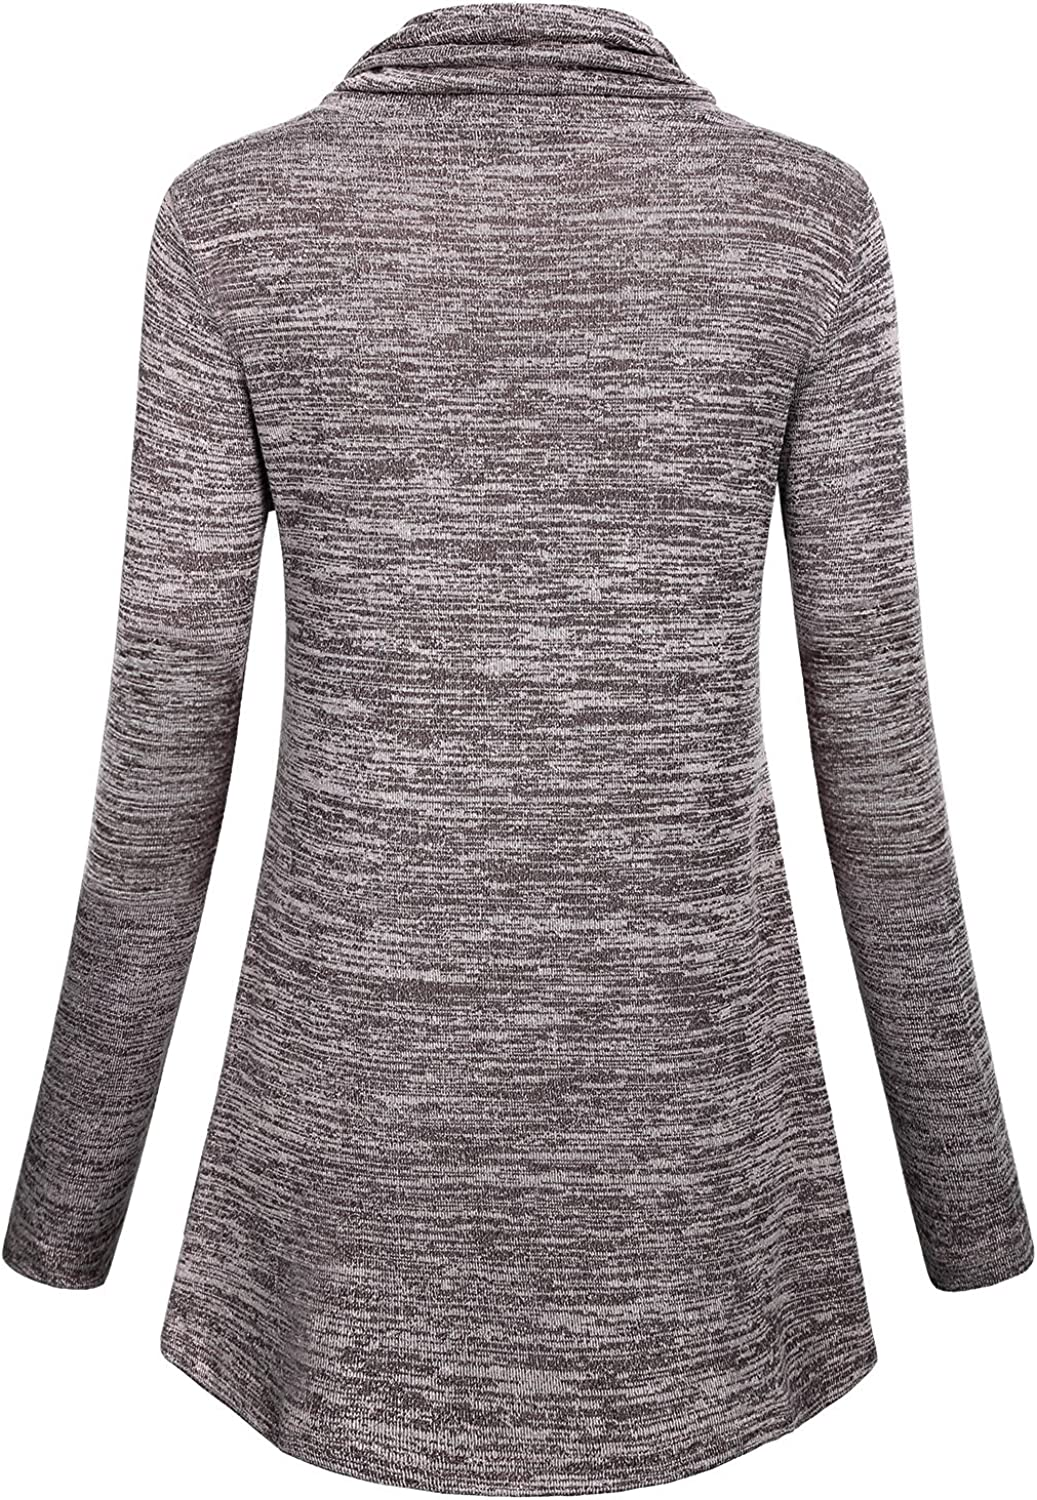 Fubotevic Mens Knit Pullover Long Sleeve Solid Color Loose Turtleneck Sweater